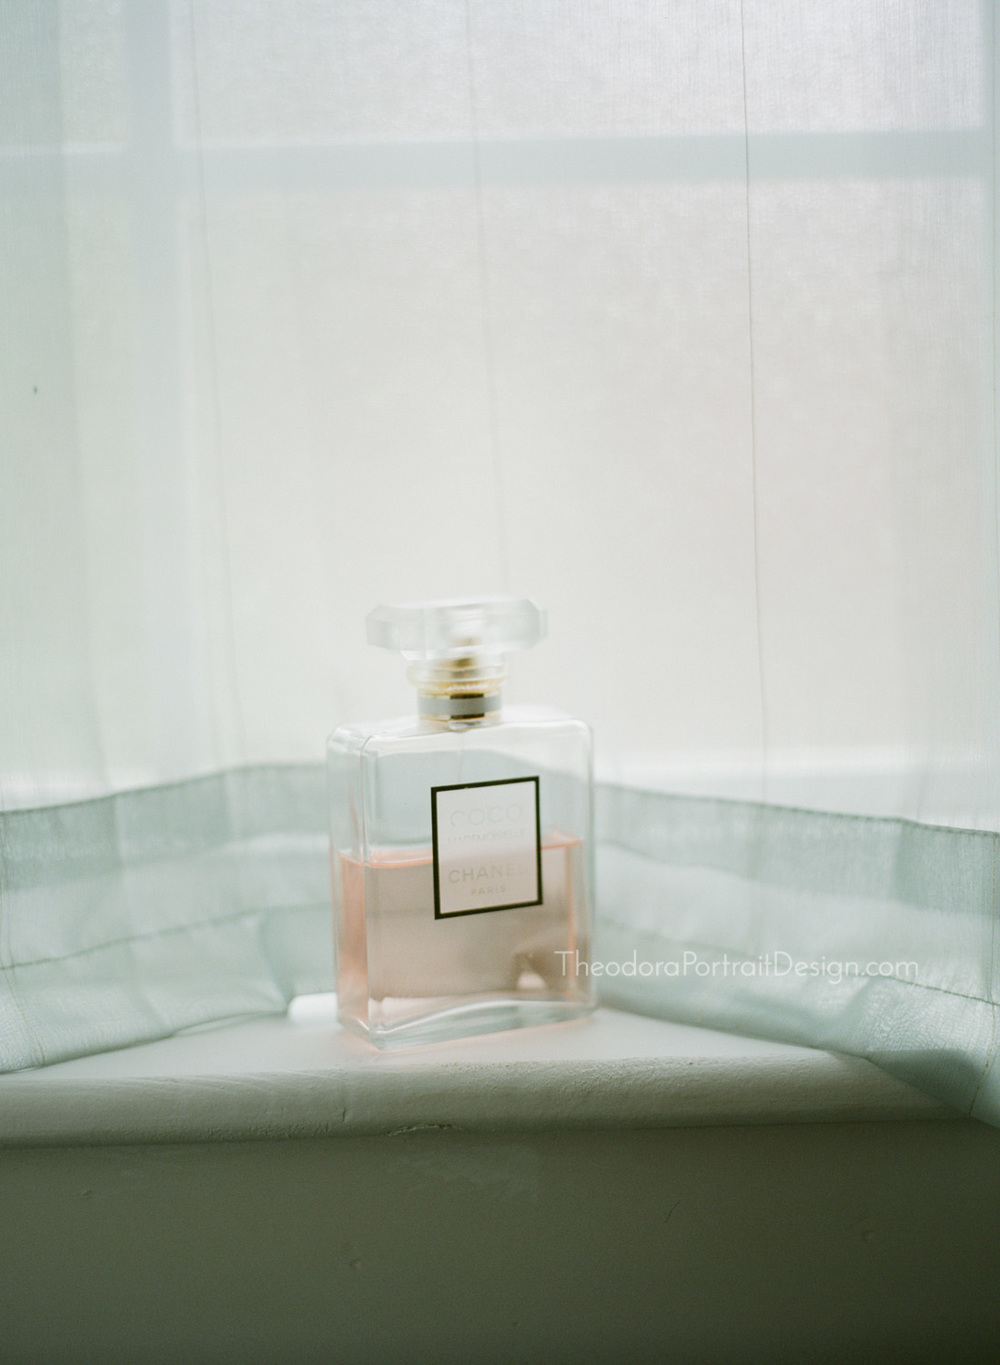 Chanel perfume   www.TheodoraPortraitDesign.com   film wedding photography